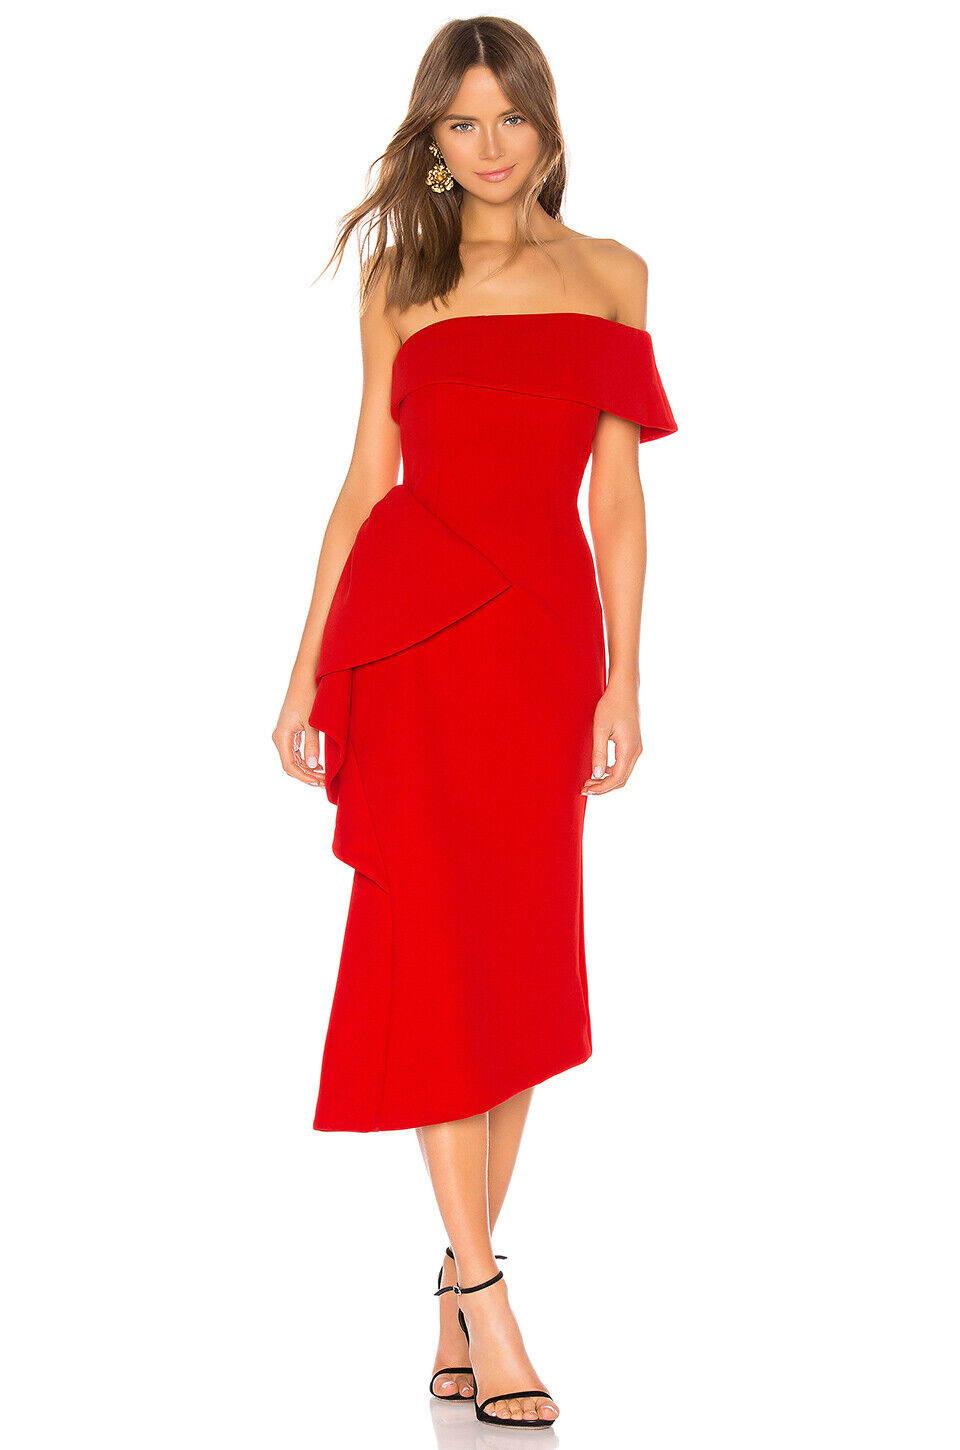 ELLIATT HYDRANGEA  FIT AND FLARE ASYMMETRICAL DRESS RED - SIZE LARGE - NWT